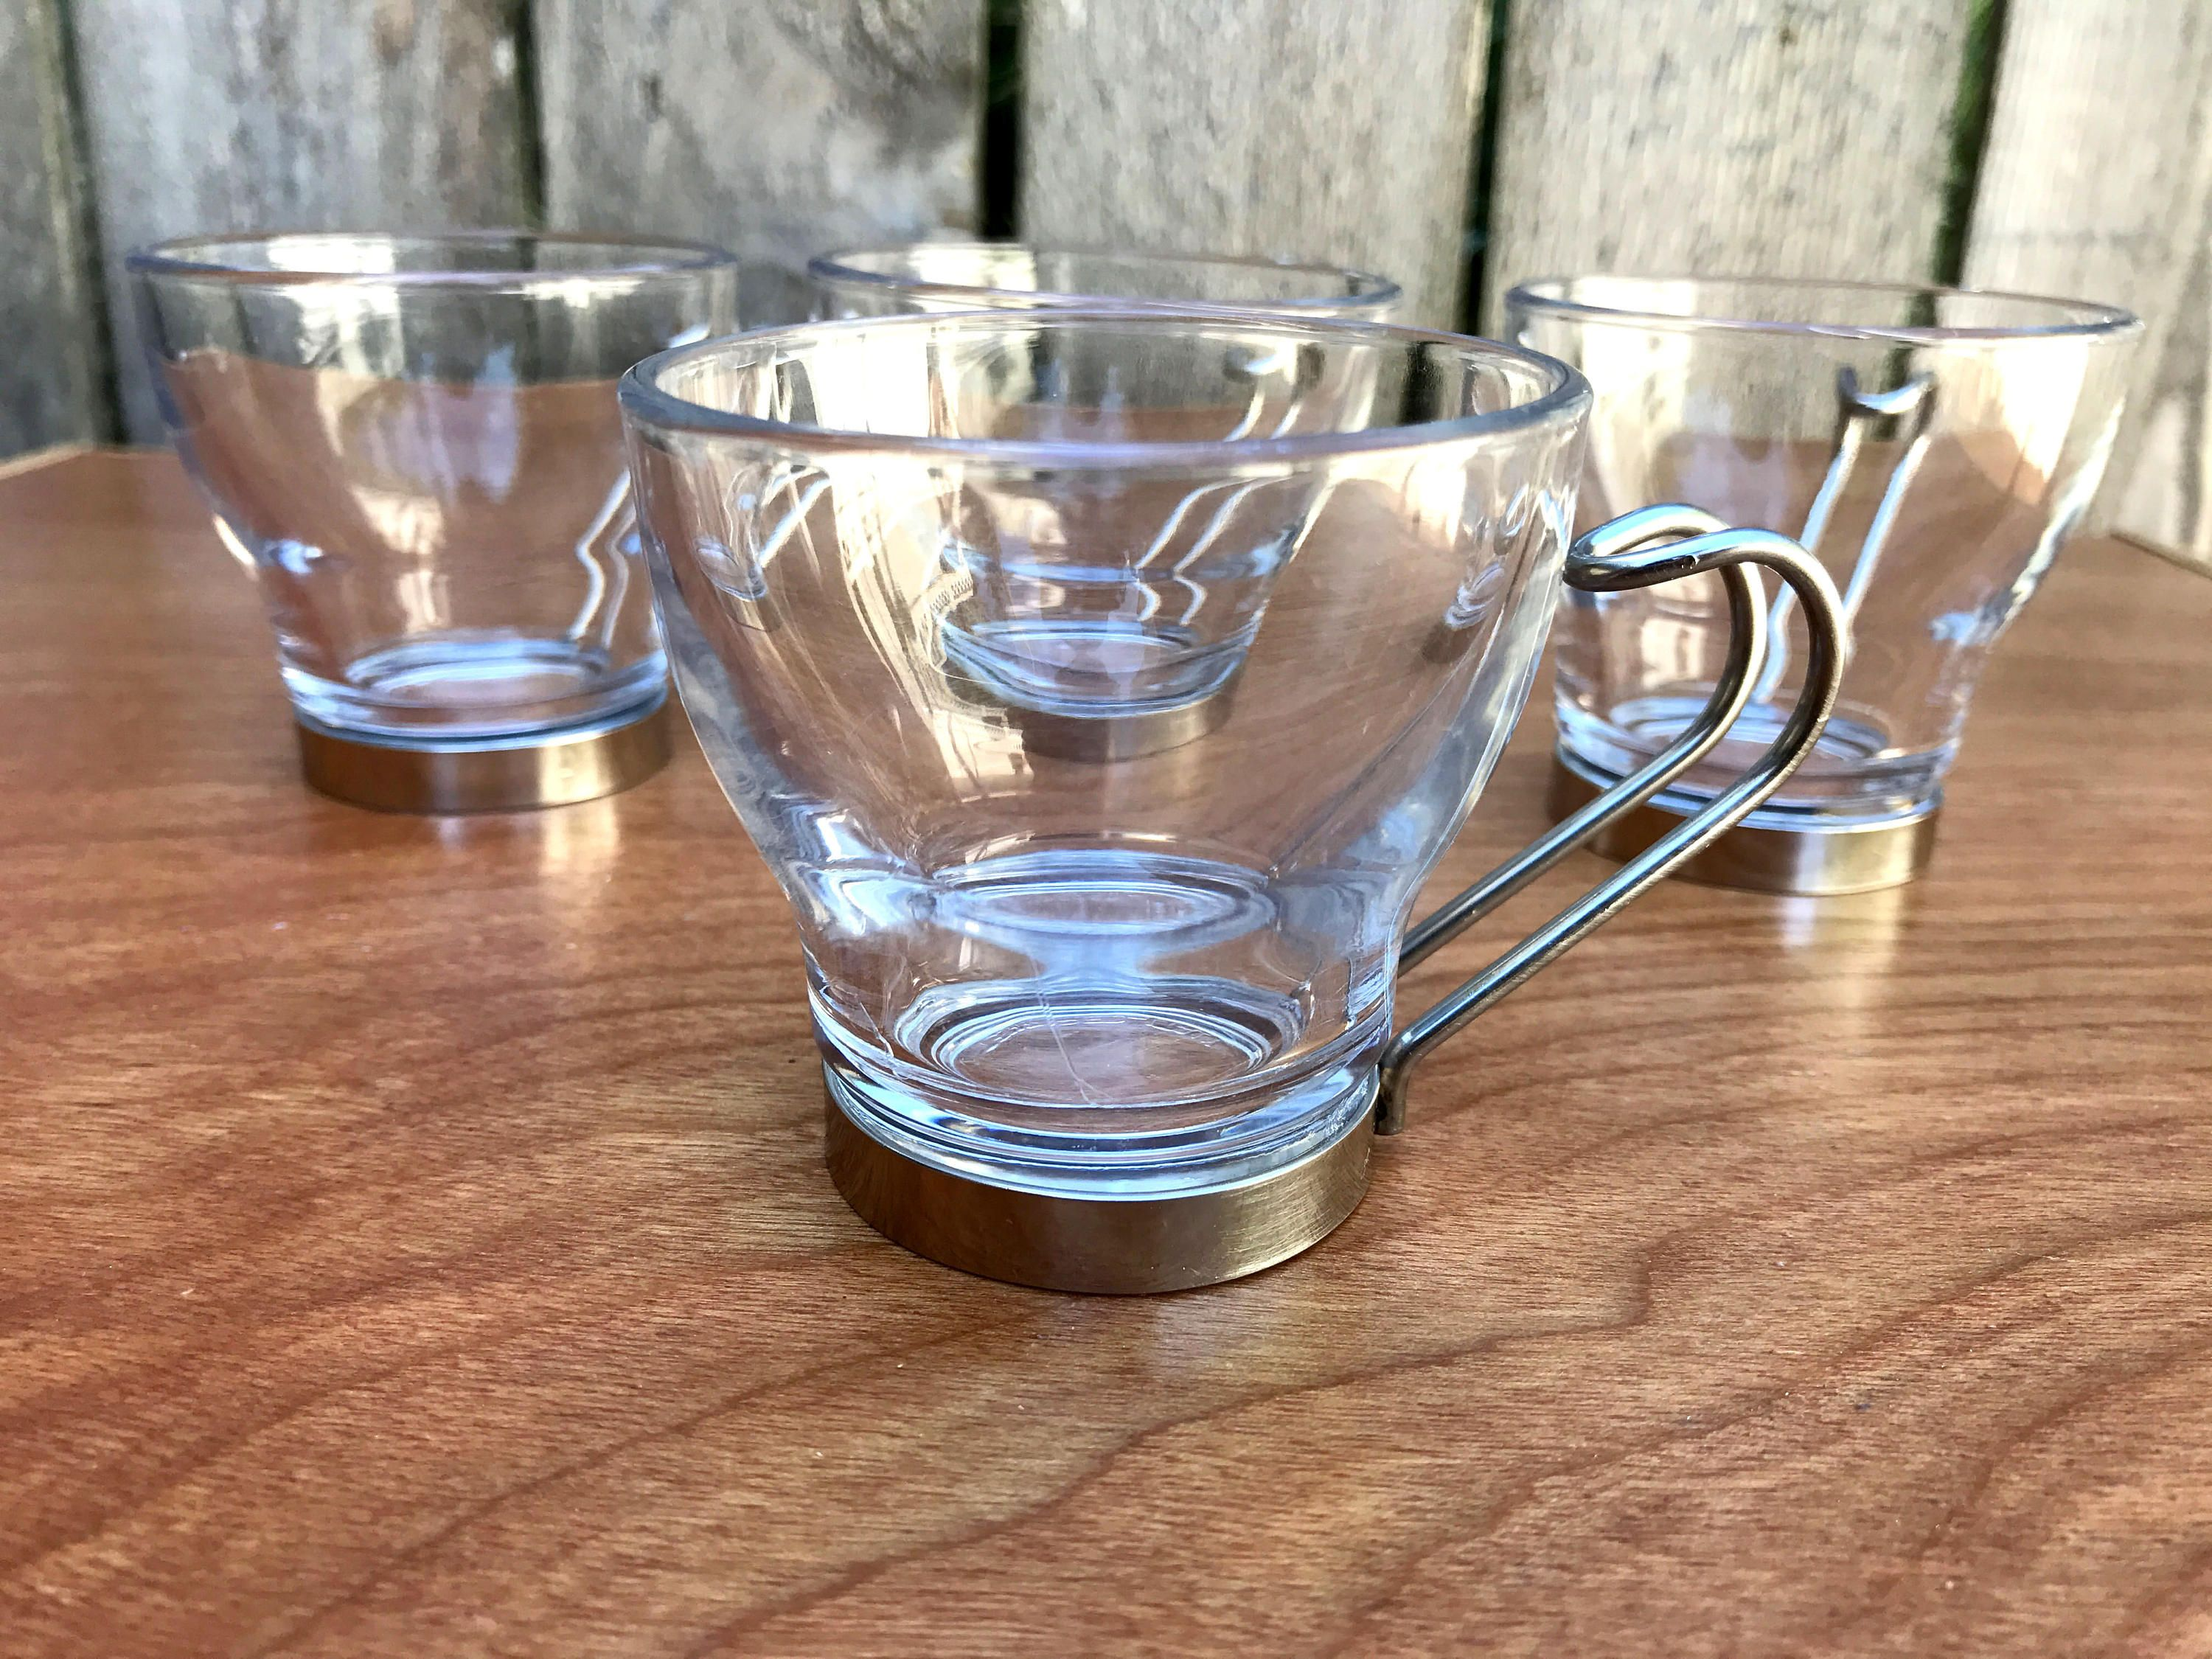 Vintage Bormioli Rocco Espresso Cups Vintage Espresso Cups Retro Glasses Made In Italy Mid Century Modern Glass Bormioli Rocco Retro Glasses Espresso Cups